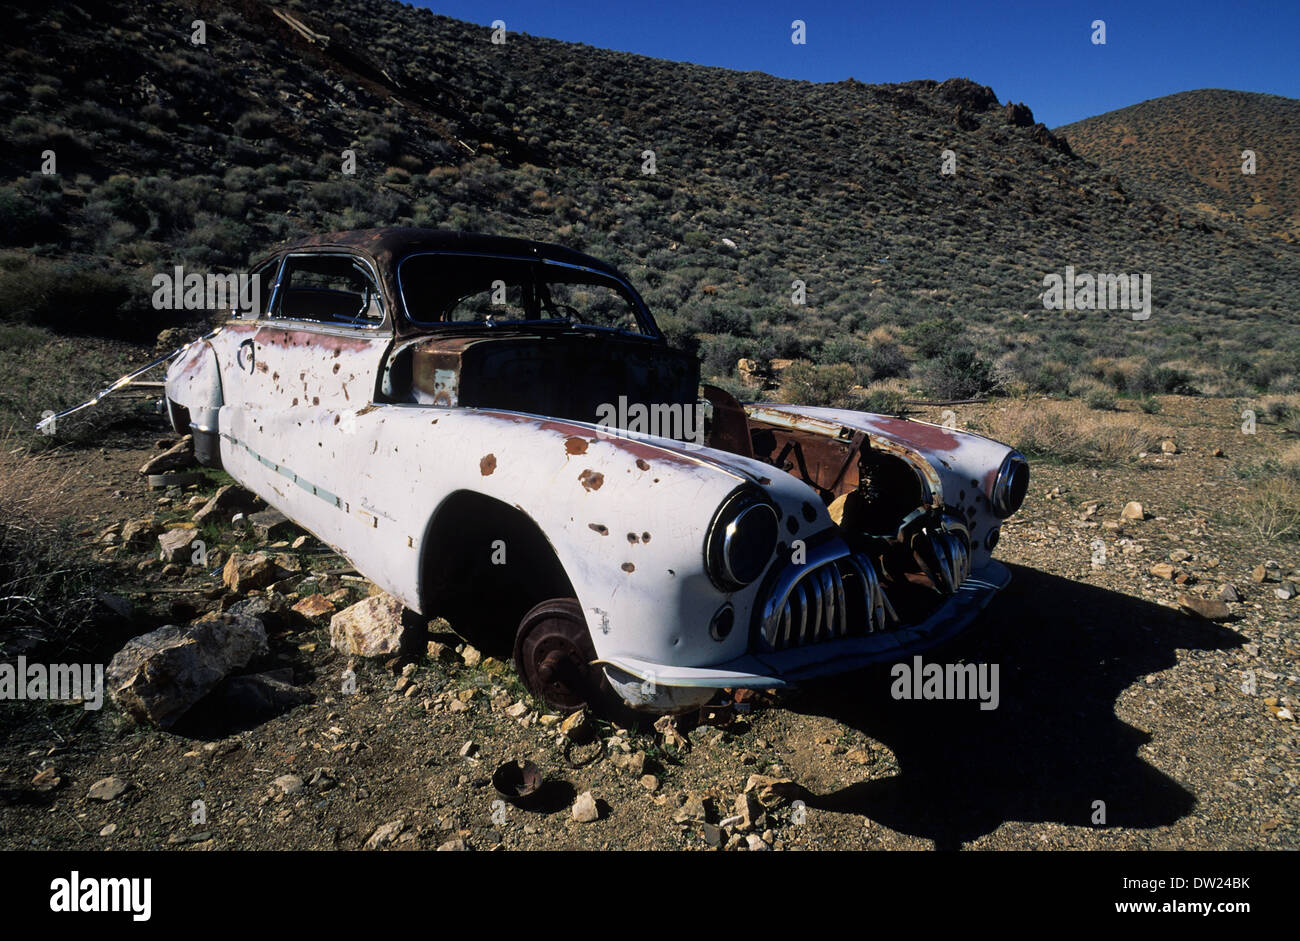 Elk248-2479 California, Death Valley National Park, Harrisburg, old rusted out car - Stock Image